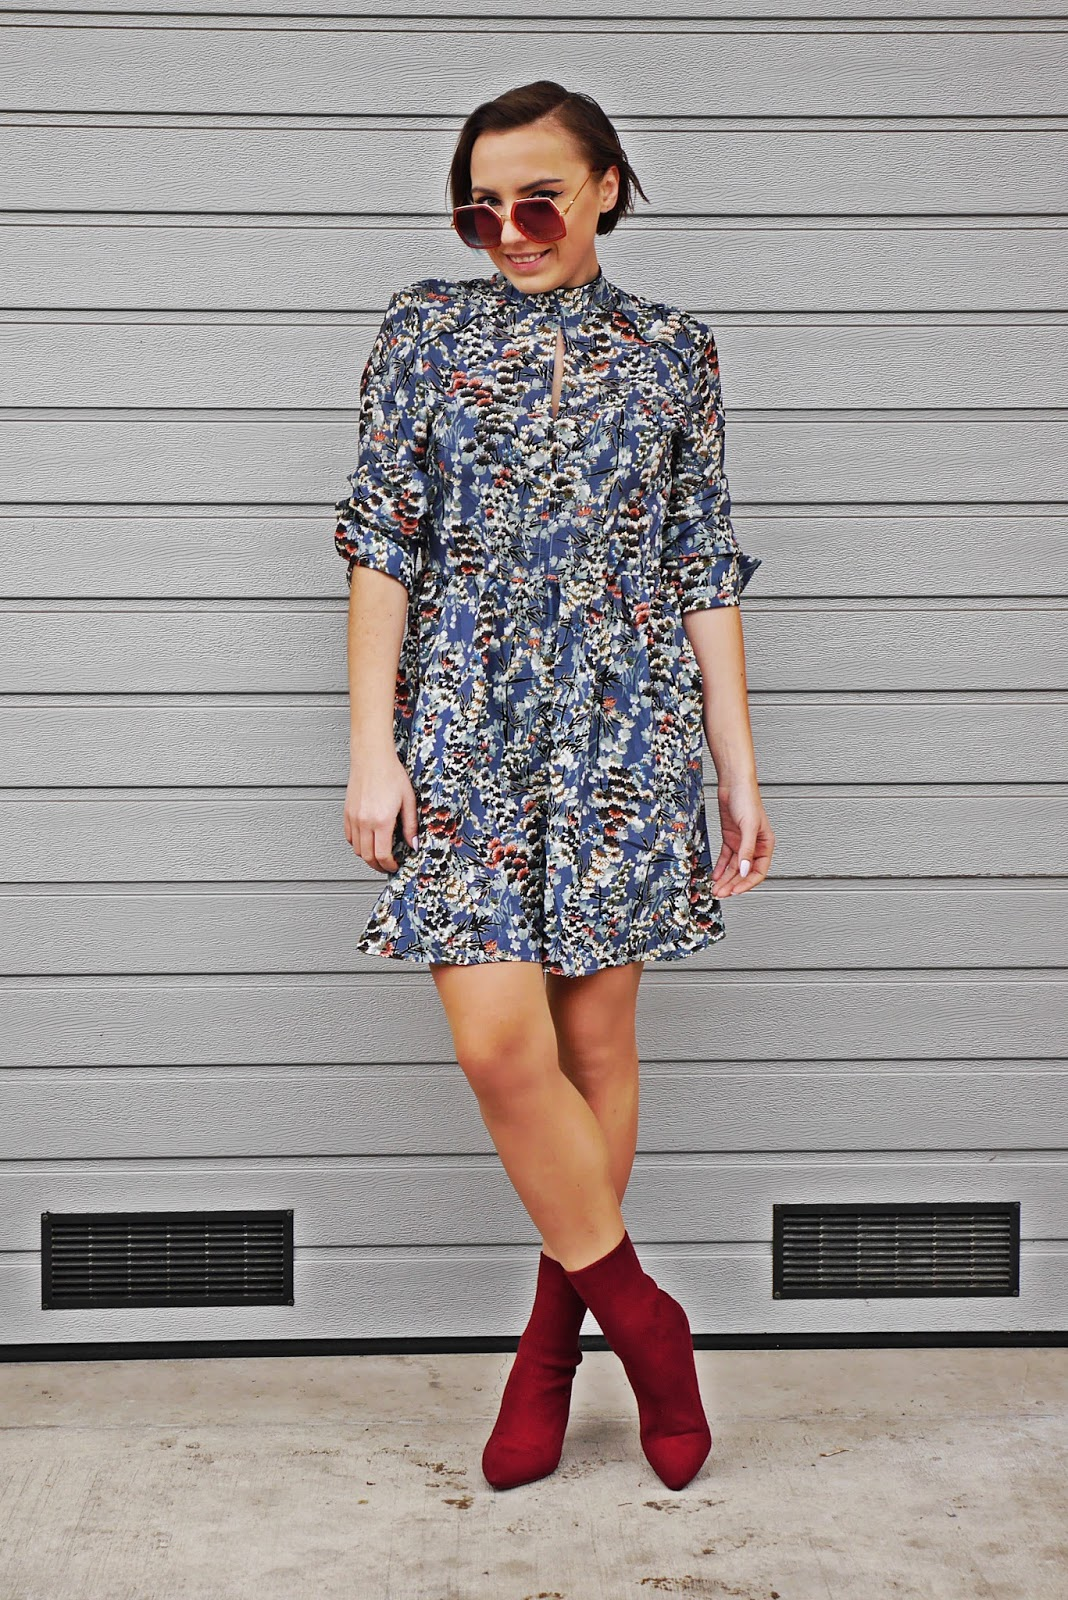 5_floral_dress_burgundy_socks_shoes_karyn_log_modowy_renee_uty_120218sw